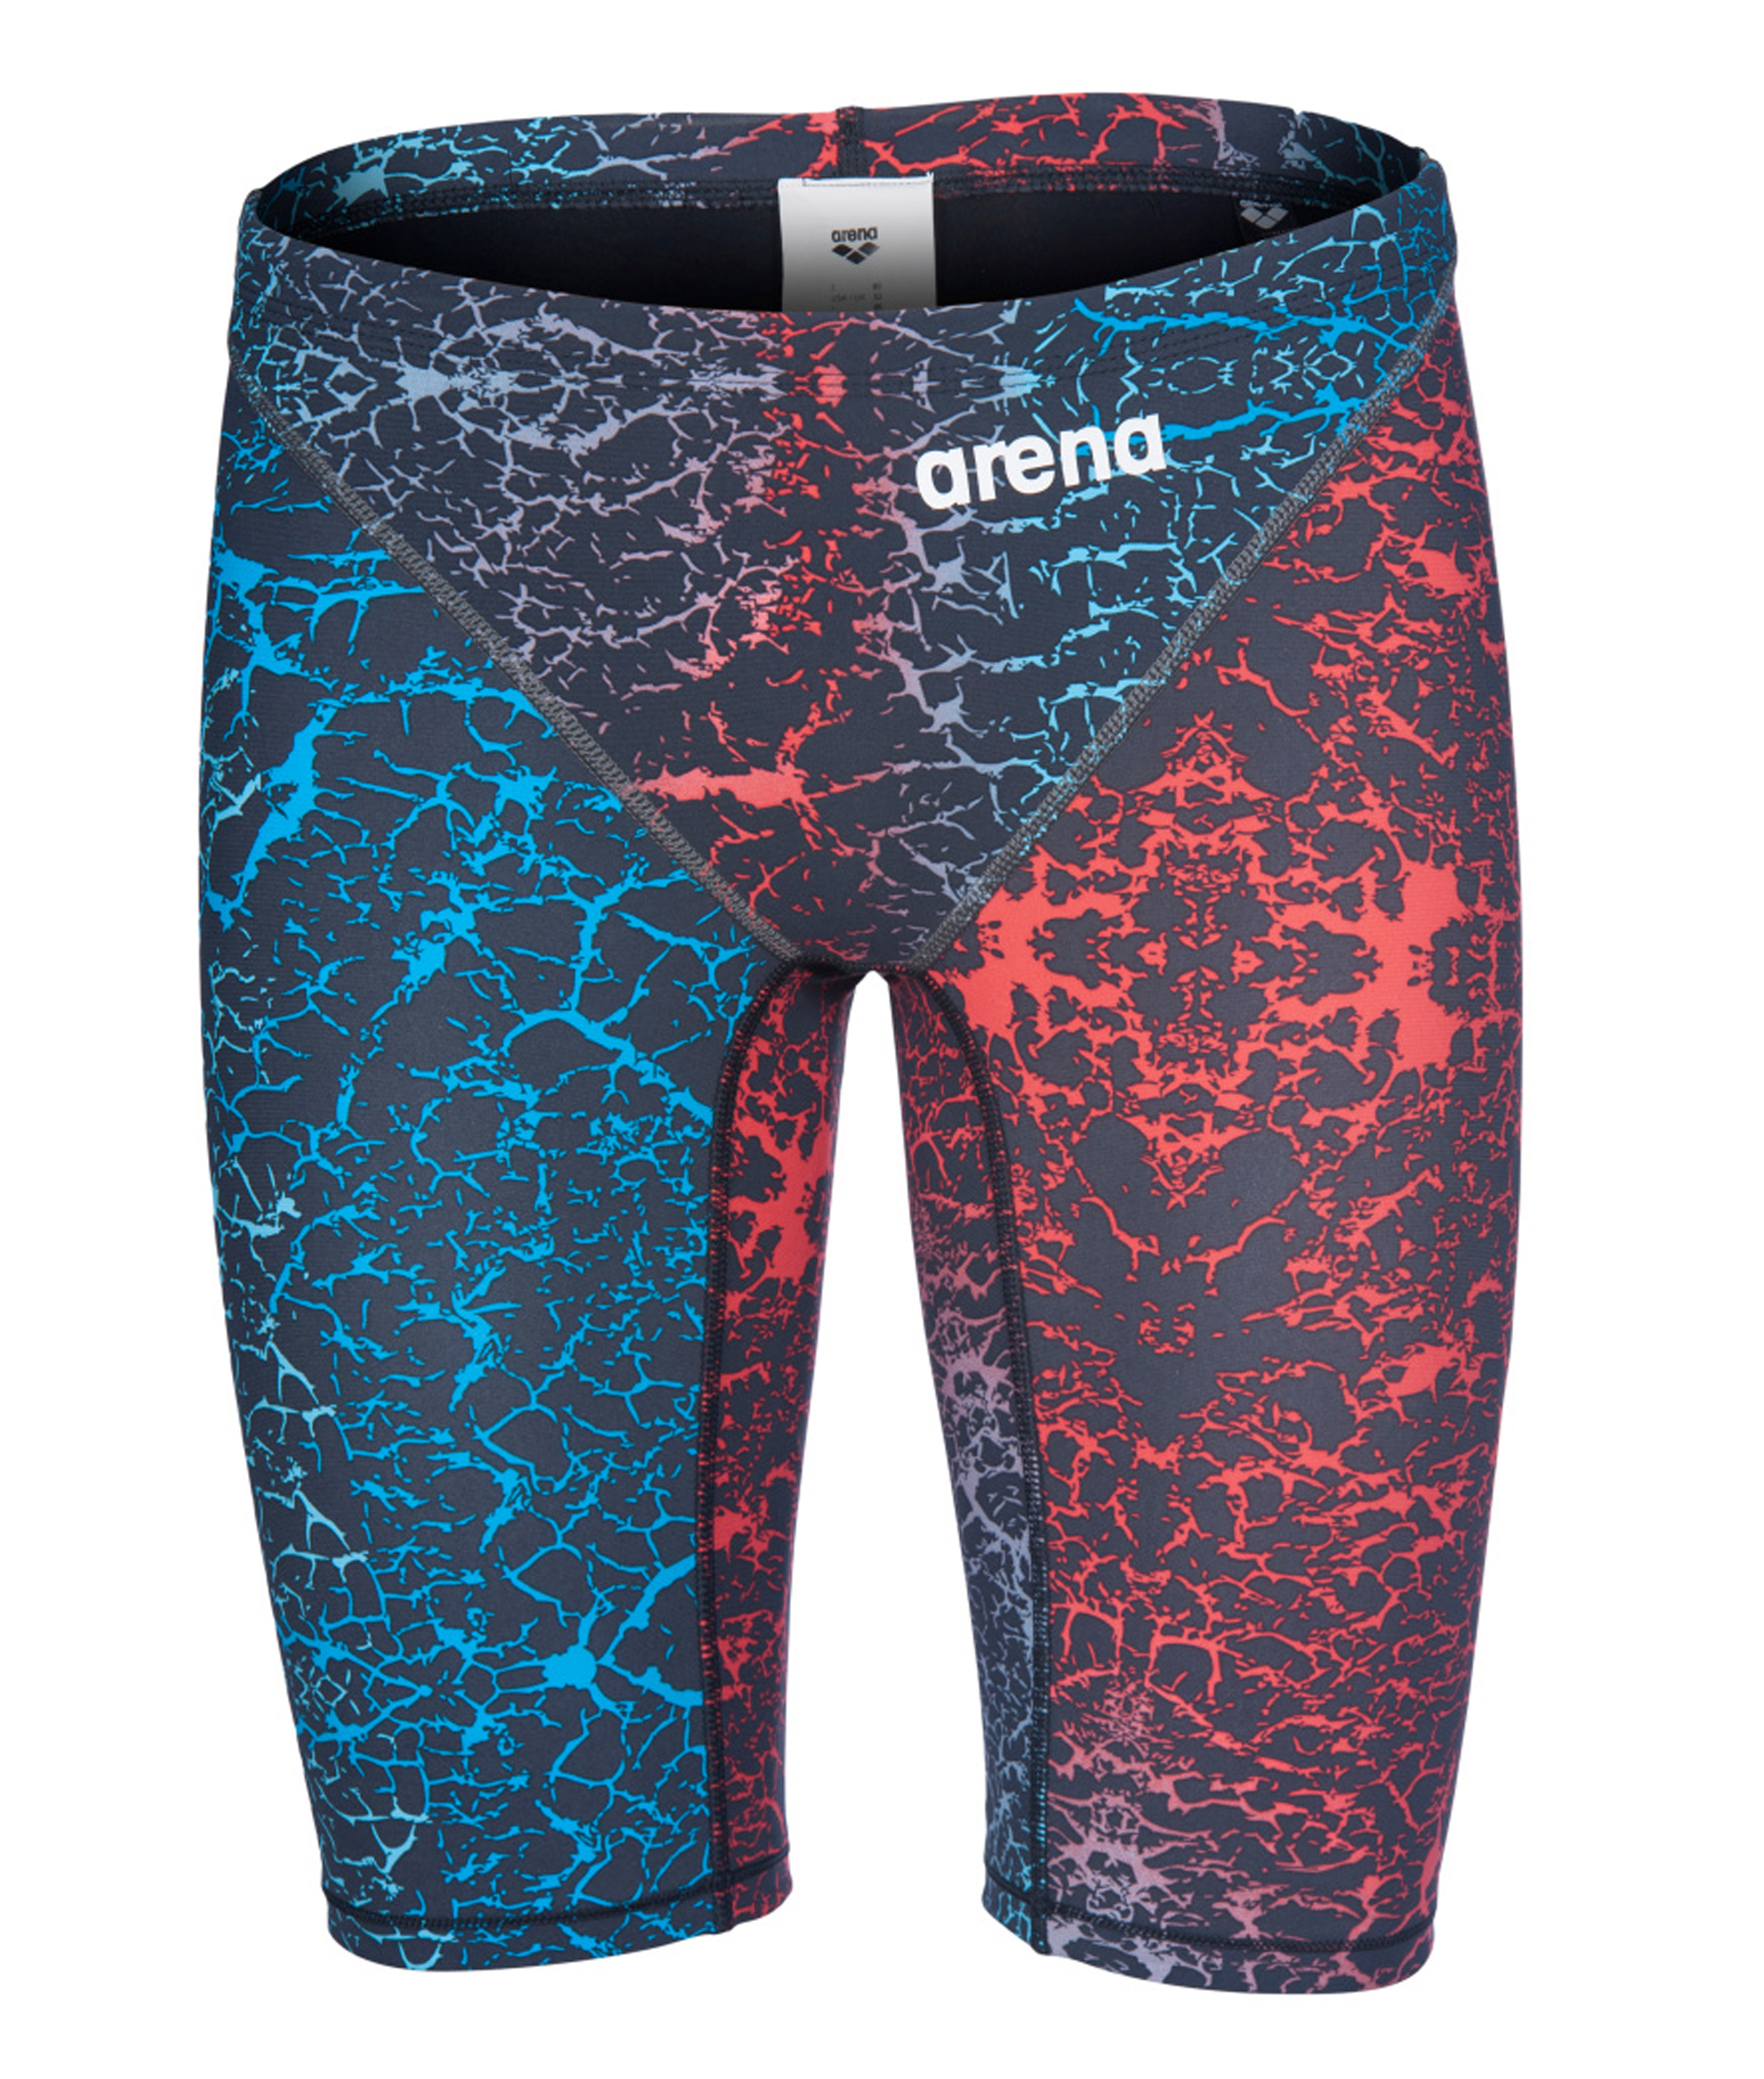 5e1b54d929 Arena Boys Powerskin ST2 Limited Edition Jammer - Blue/Red